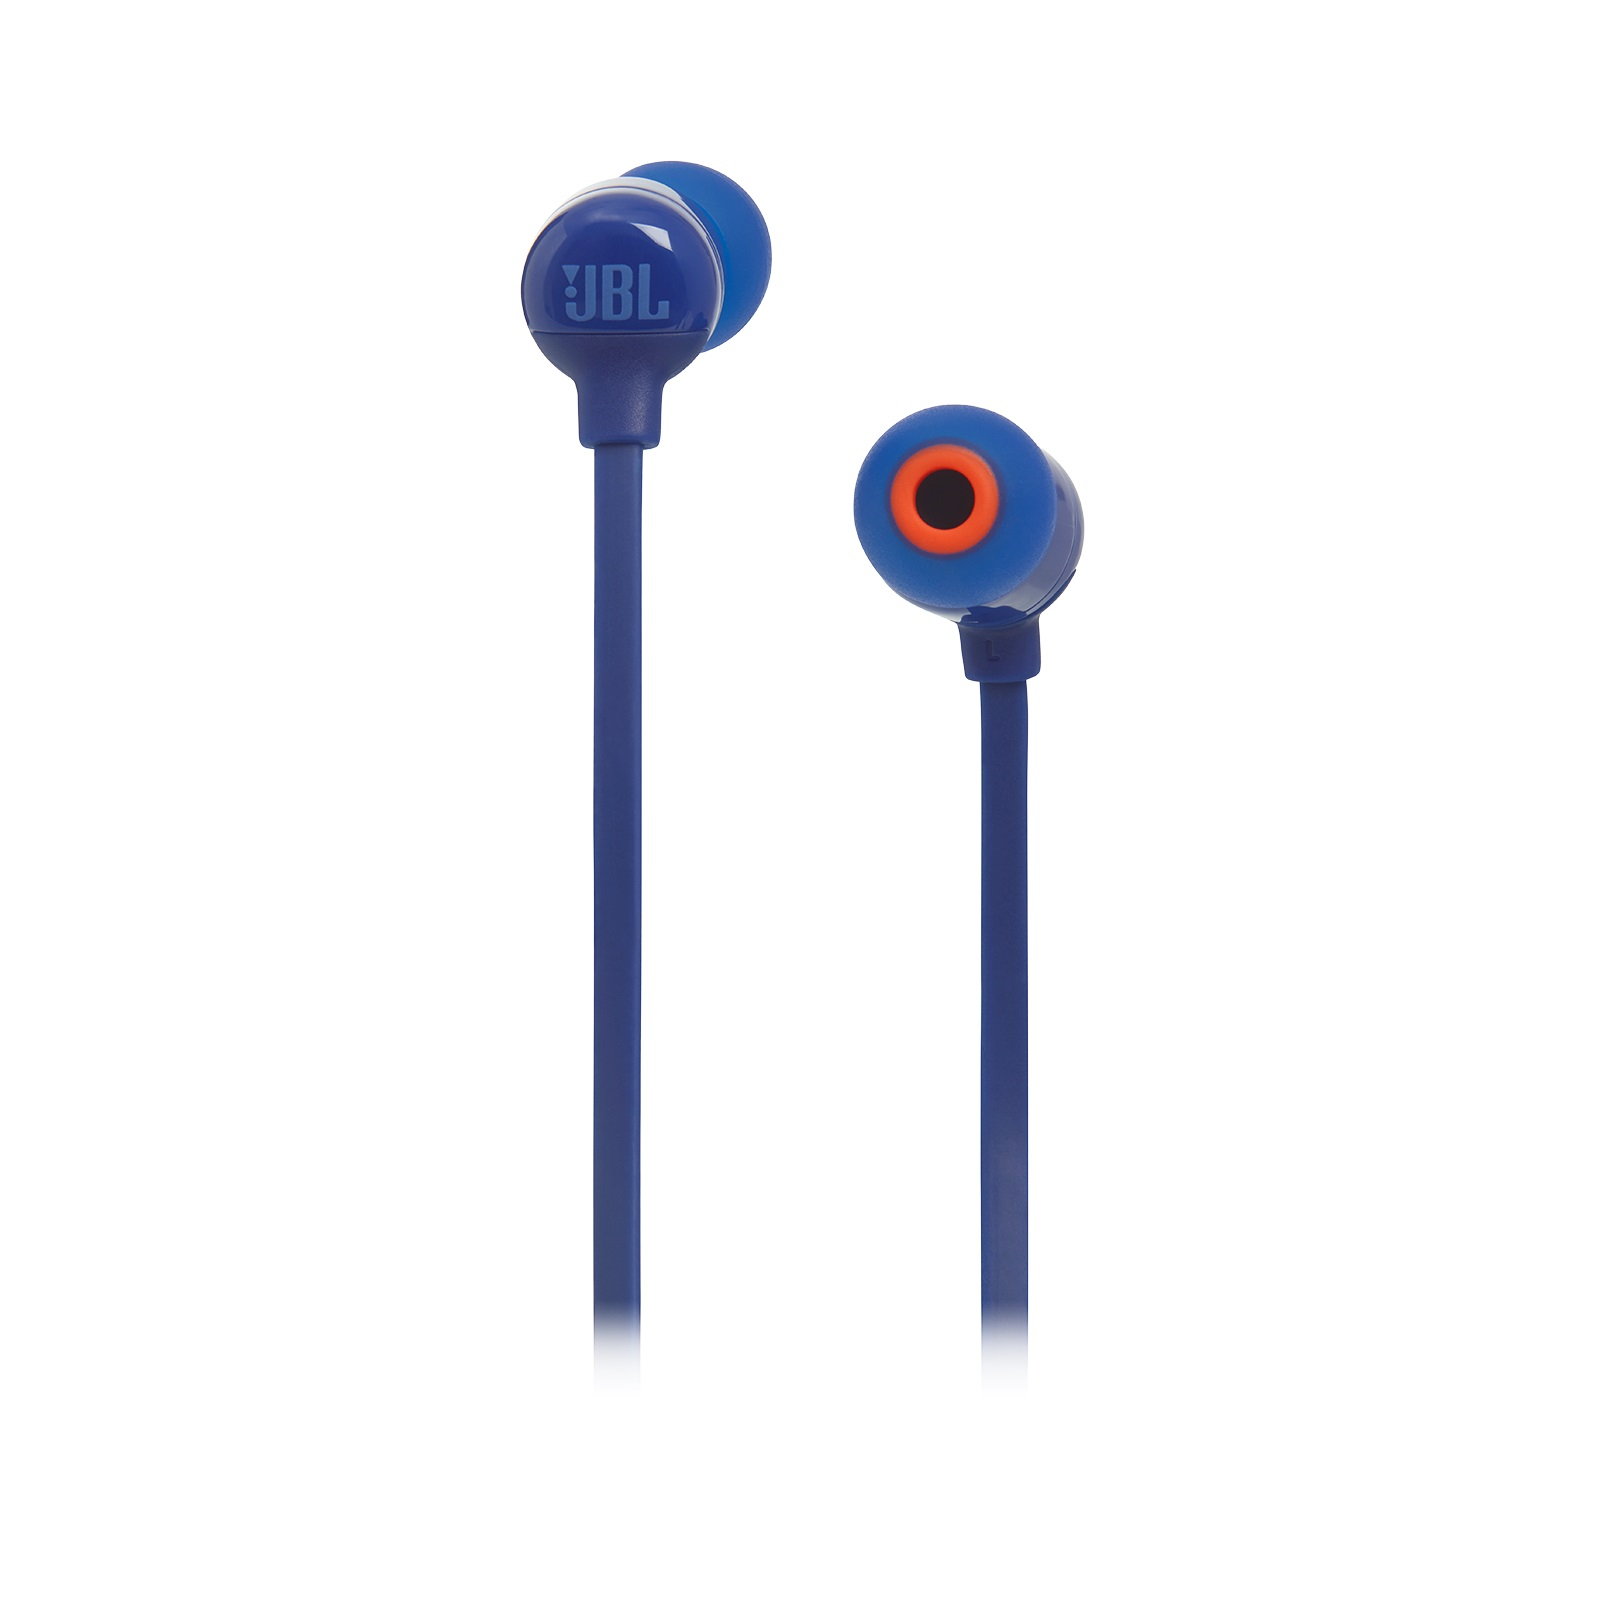 Наушники JBL T110 (JBLT110BLU), 3,5mm, 20-20000 Hz, 16 Om, 200 dB, 1.1m, Blue